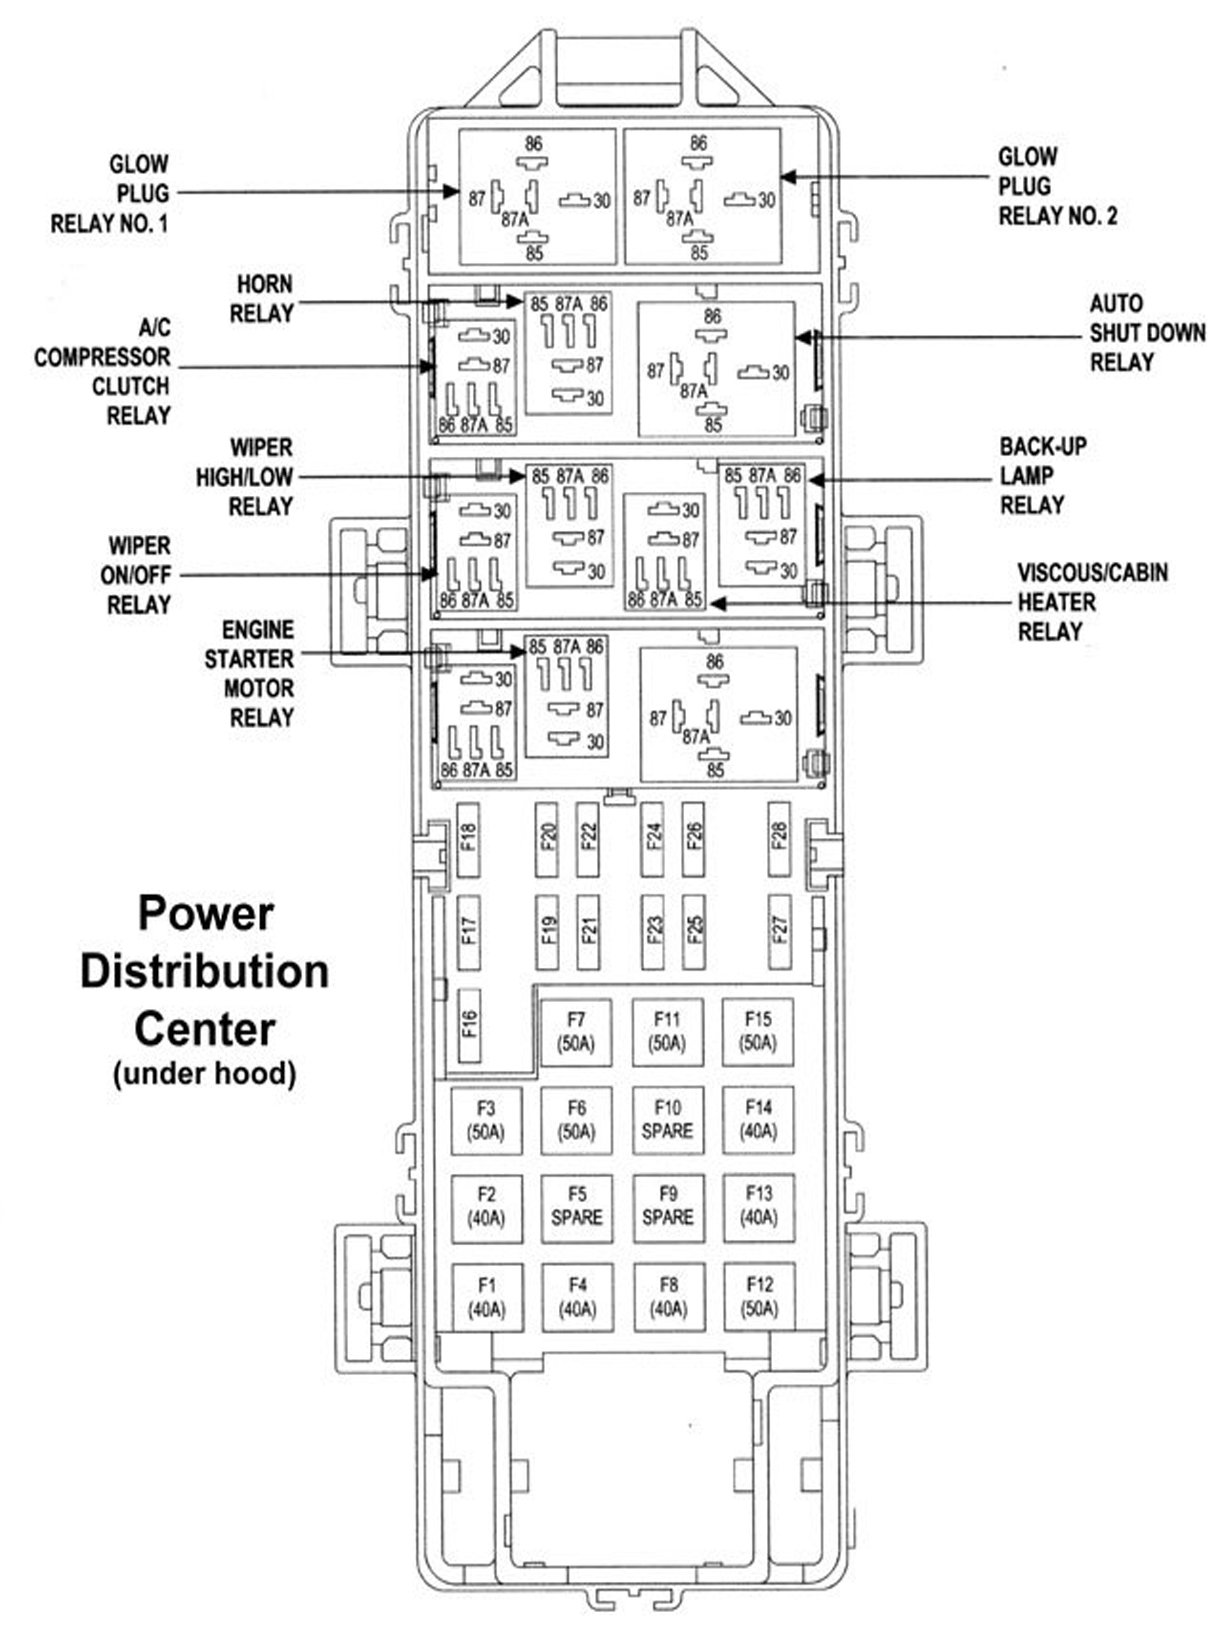 hight resolution of 1997 jeep grand cherokee fuse diagram smart wiring diagrams u2022 2003 dodge grand caravan headliner